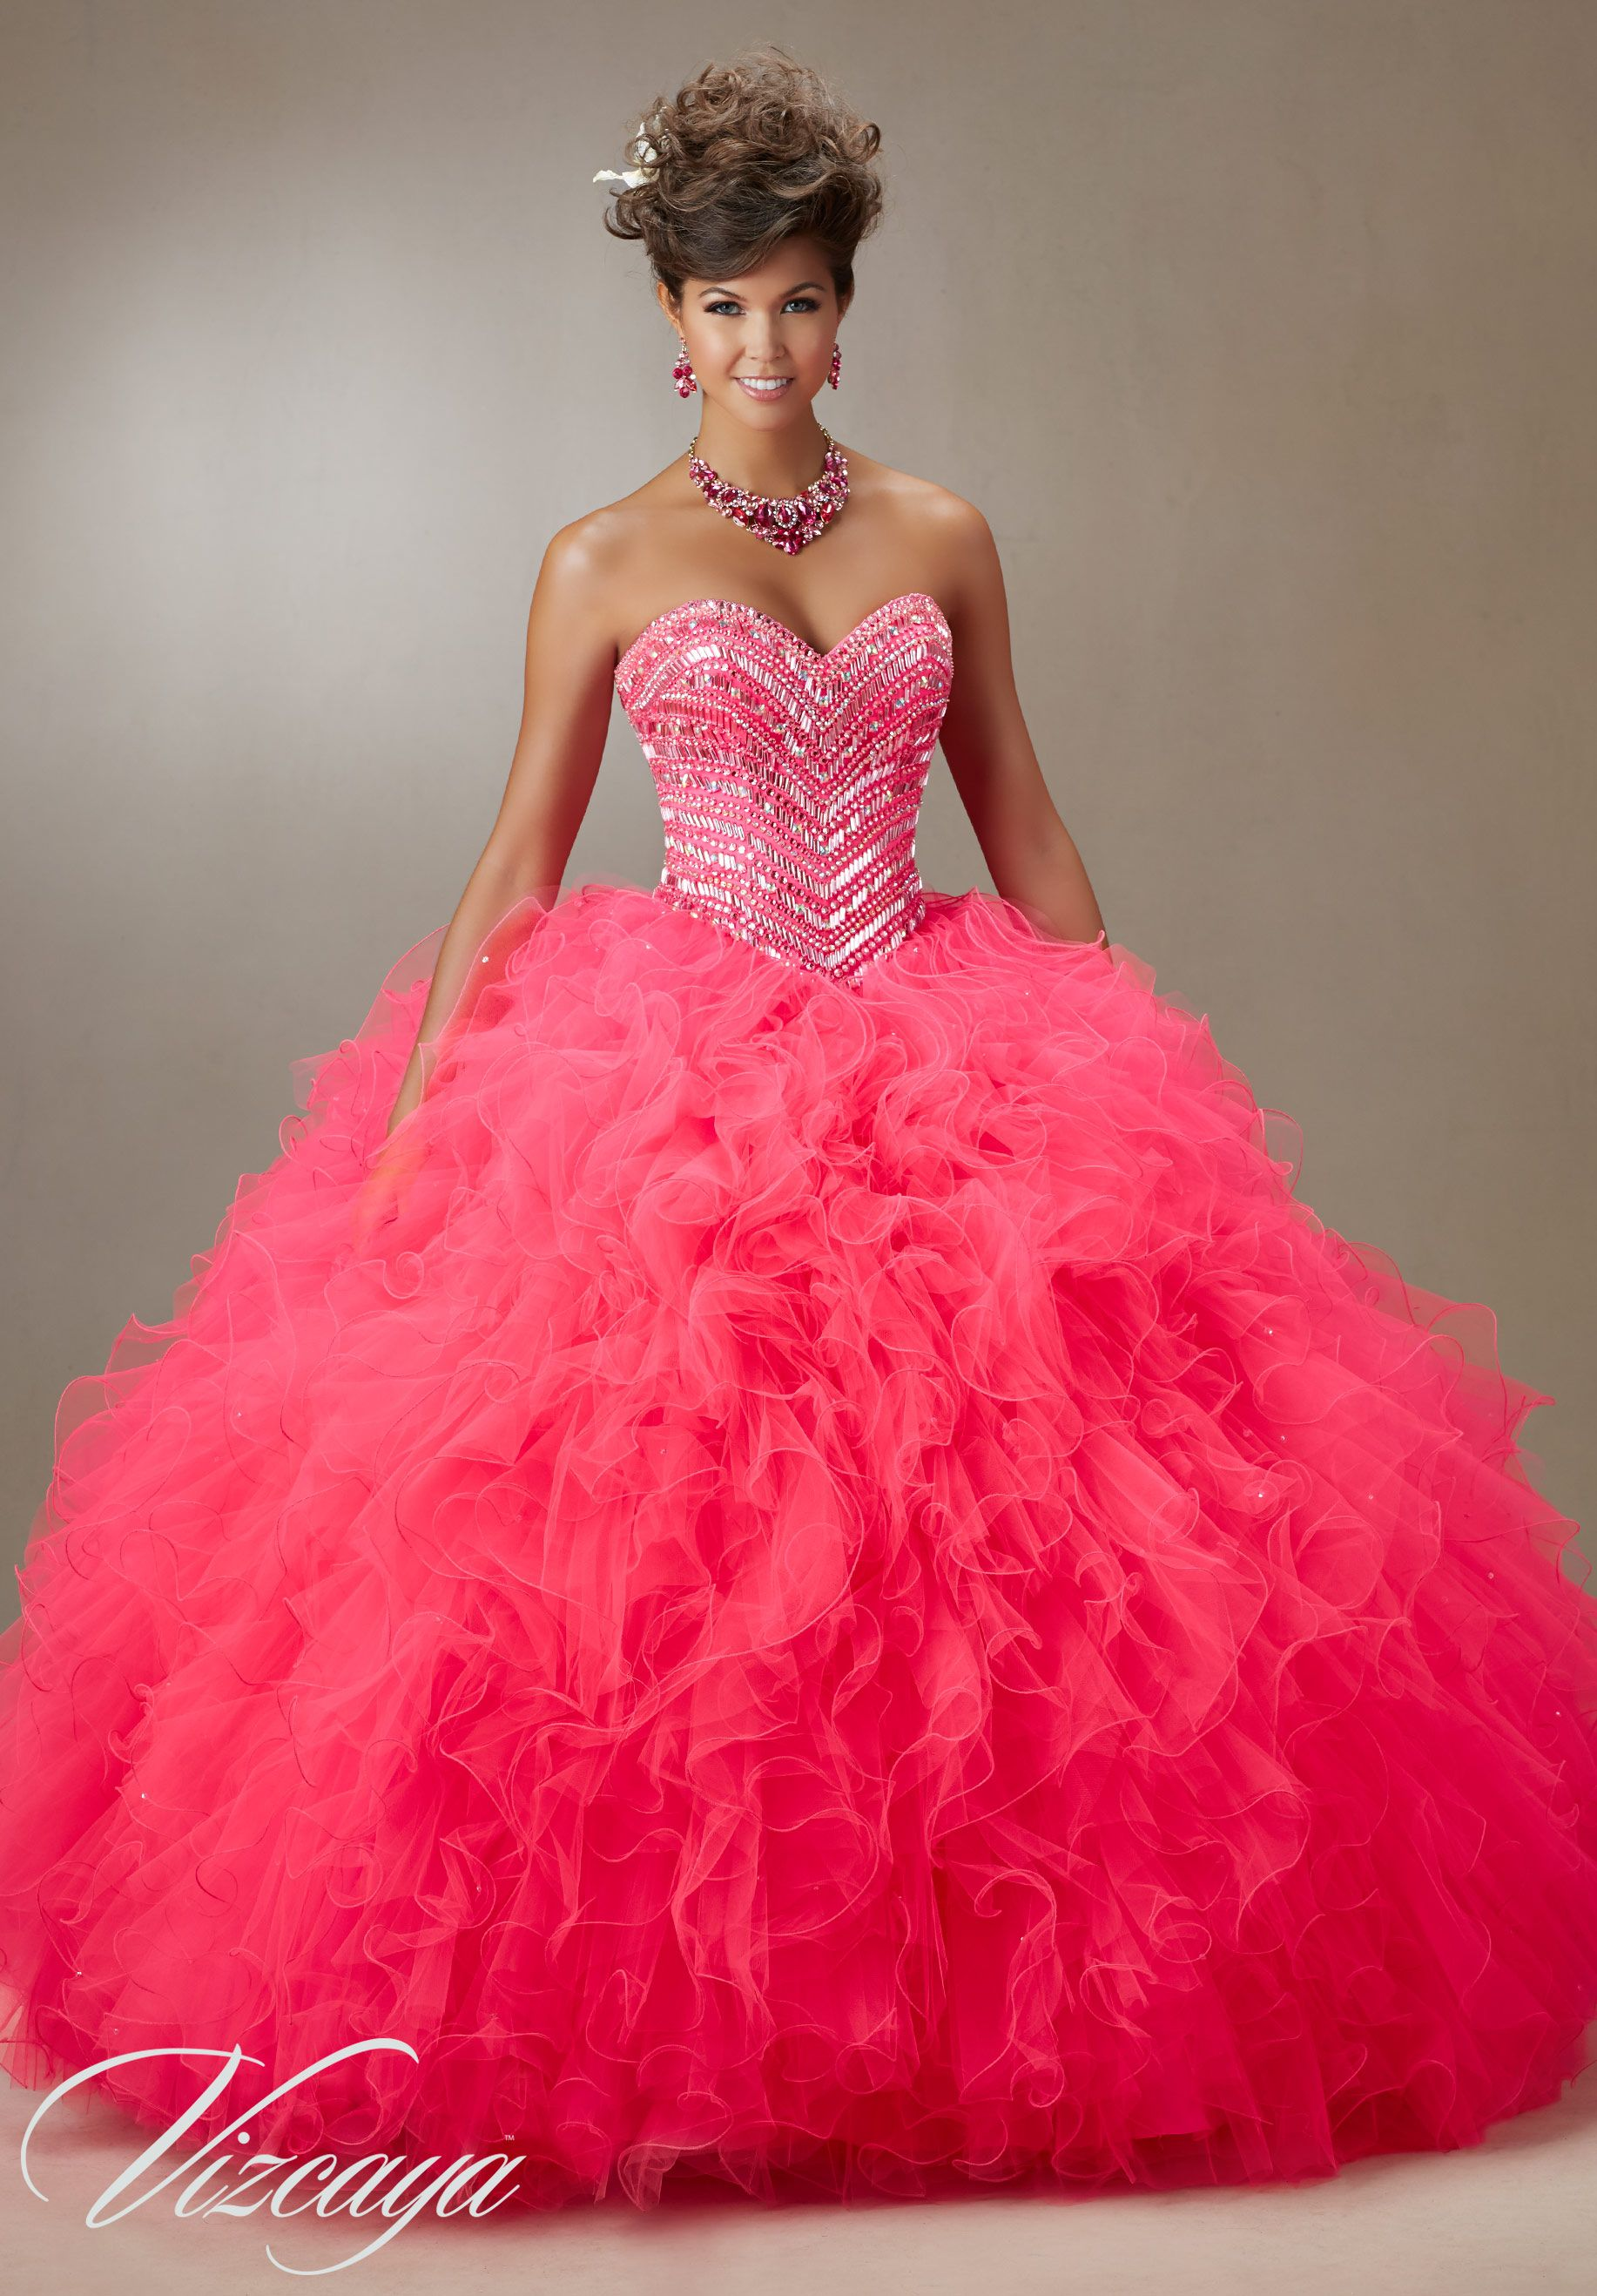 b401e64d430 89072 Quinceanera Gowns Jeweled Beading on a Ruffled Tulle Ball Gown ...